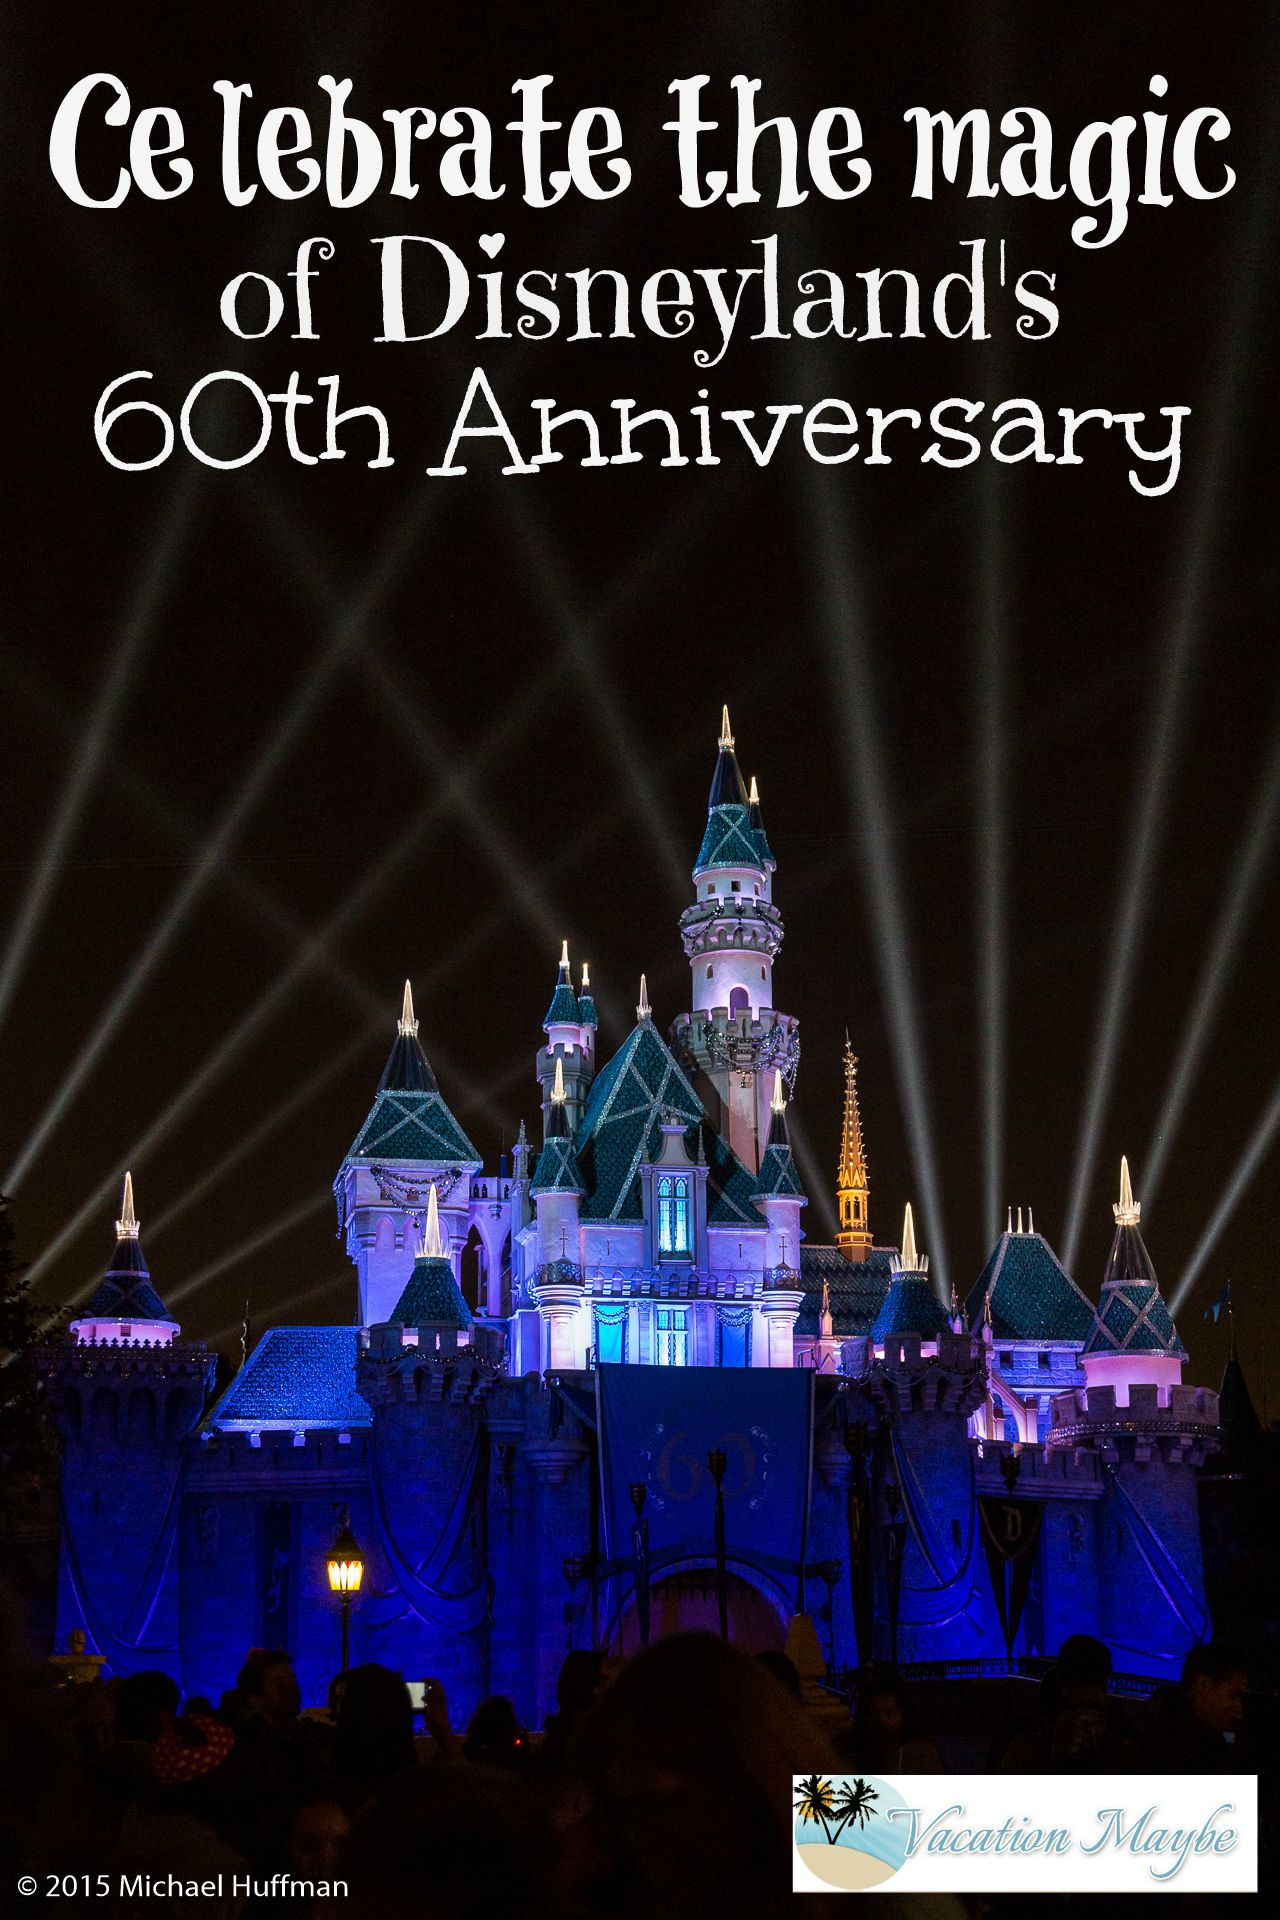 Disneyland's 60th Anniversary Diamond Celebration